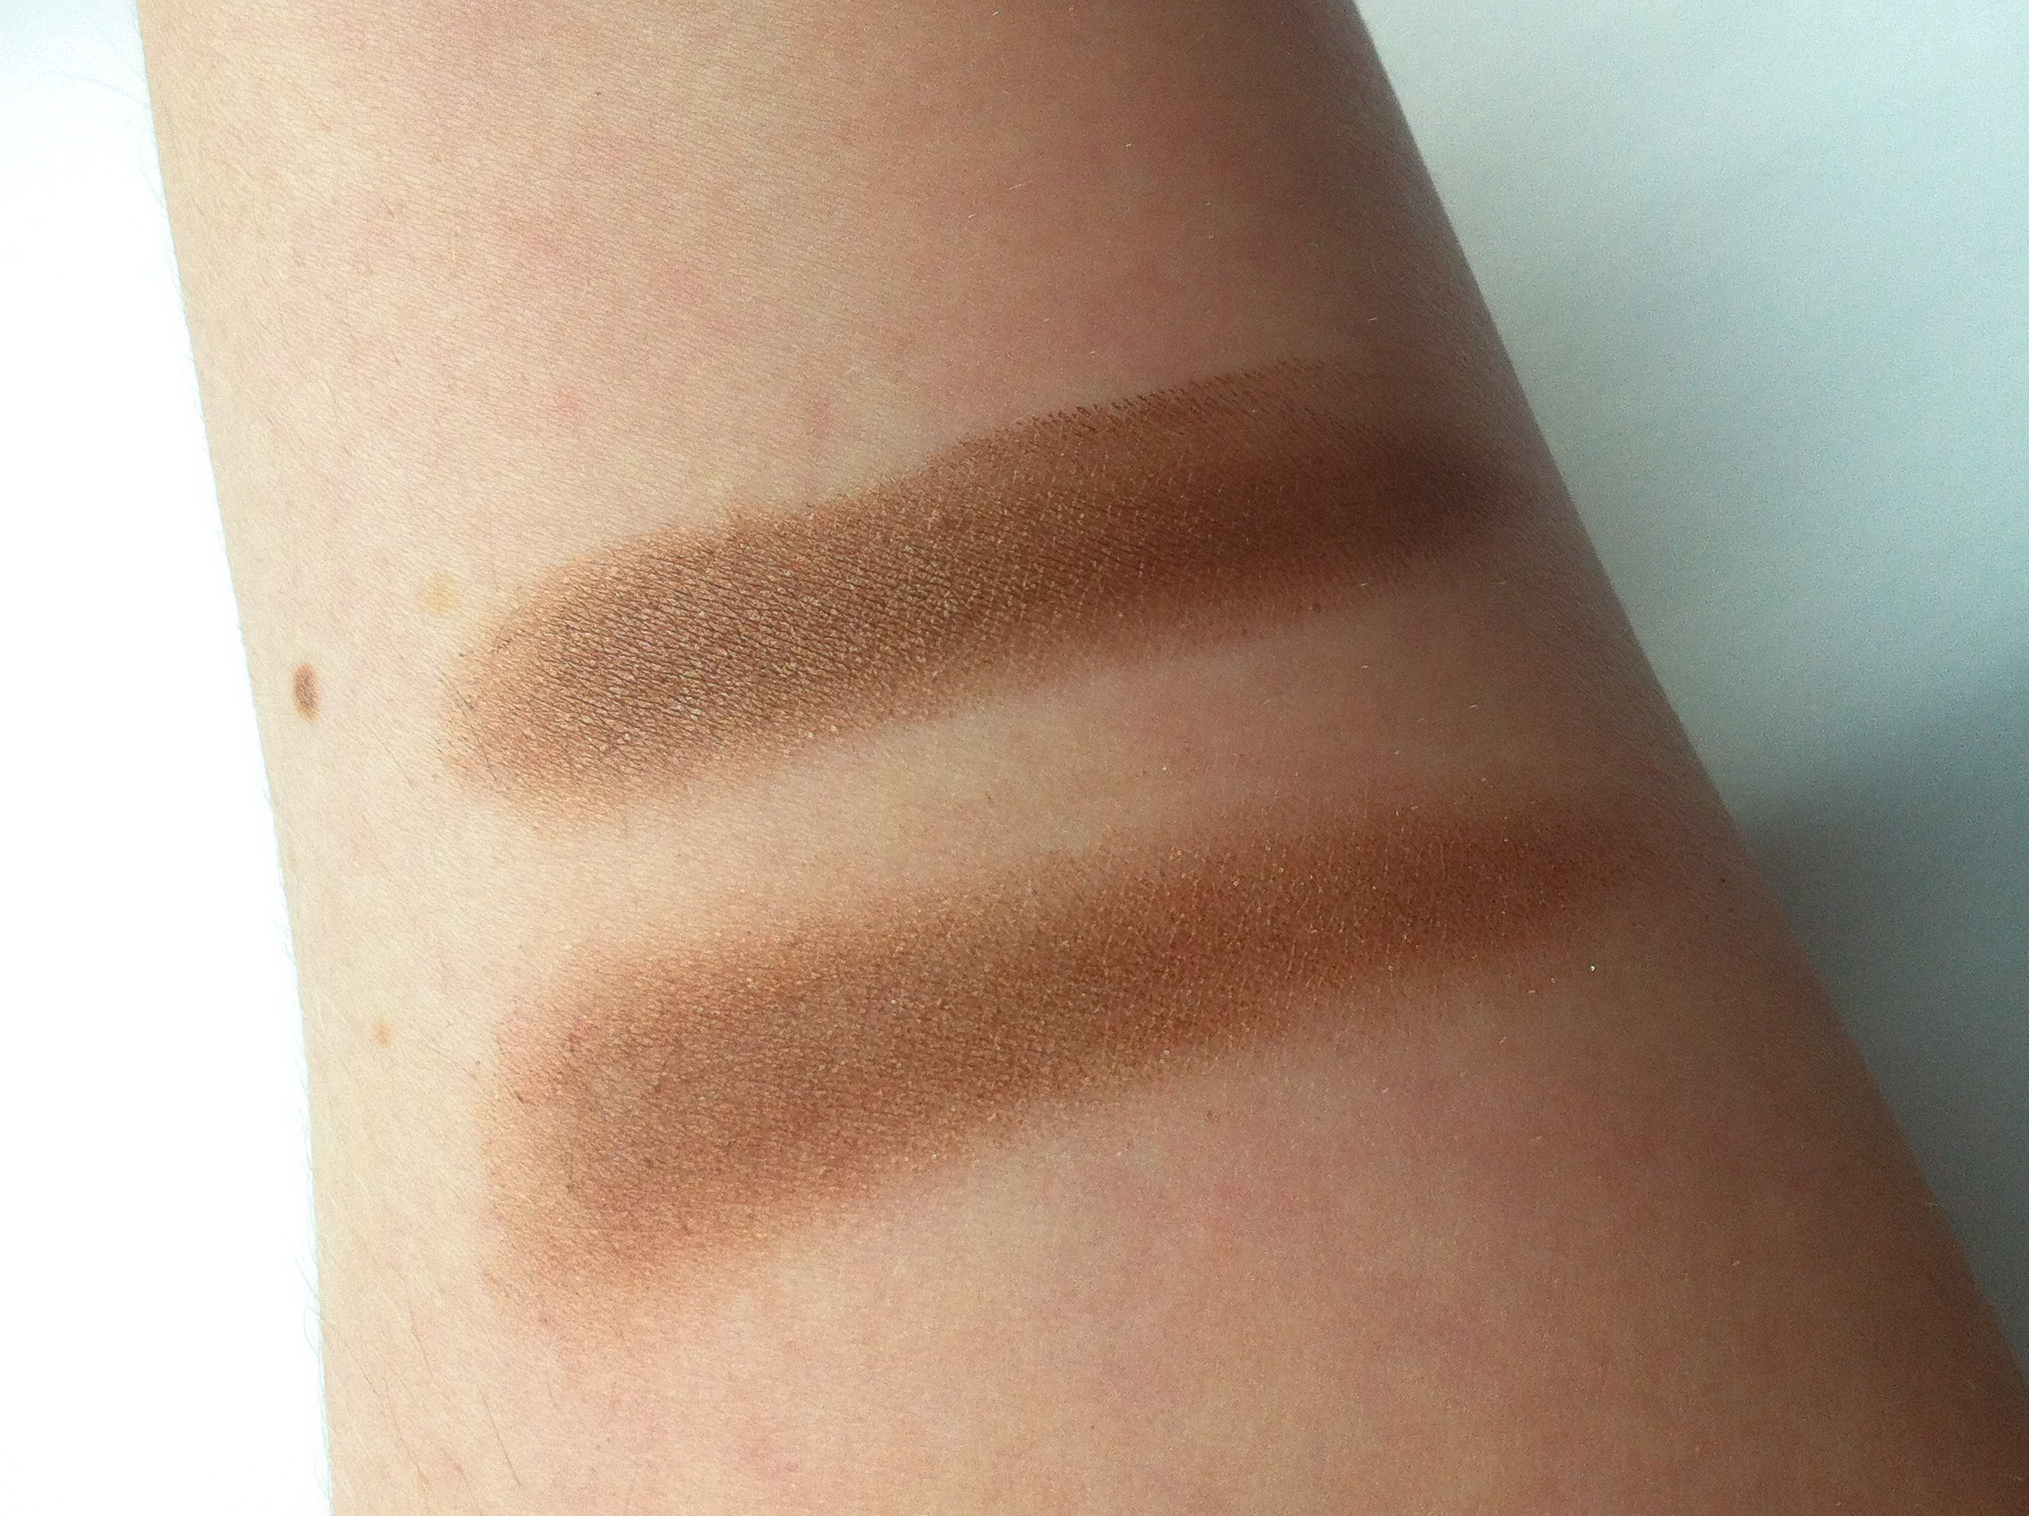 I swatched MAC Eclair (Paint Pot) next to MAC Mulch (powder eyeshadow) for reference. Eclair is on top, and Mulch is on the bottom.